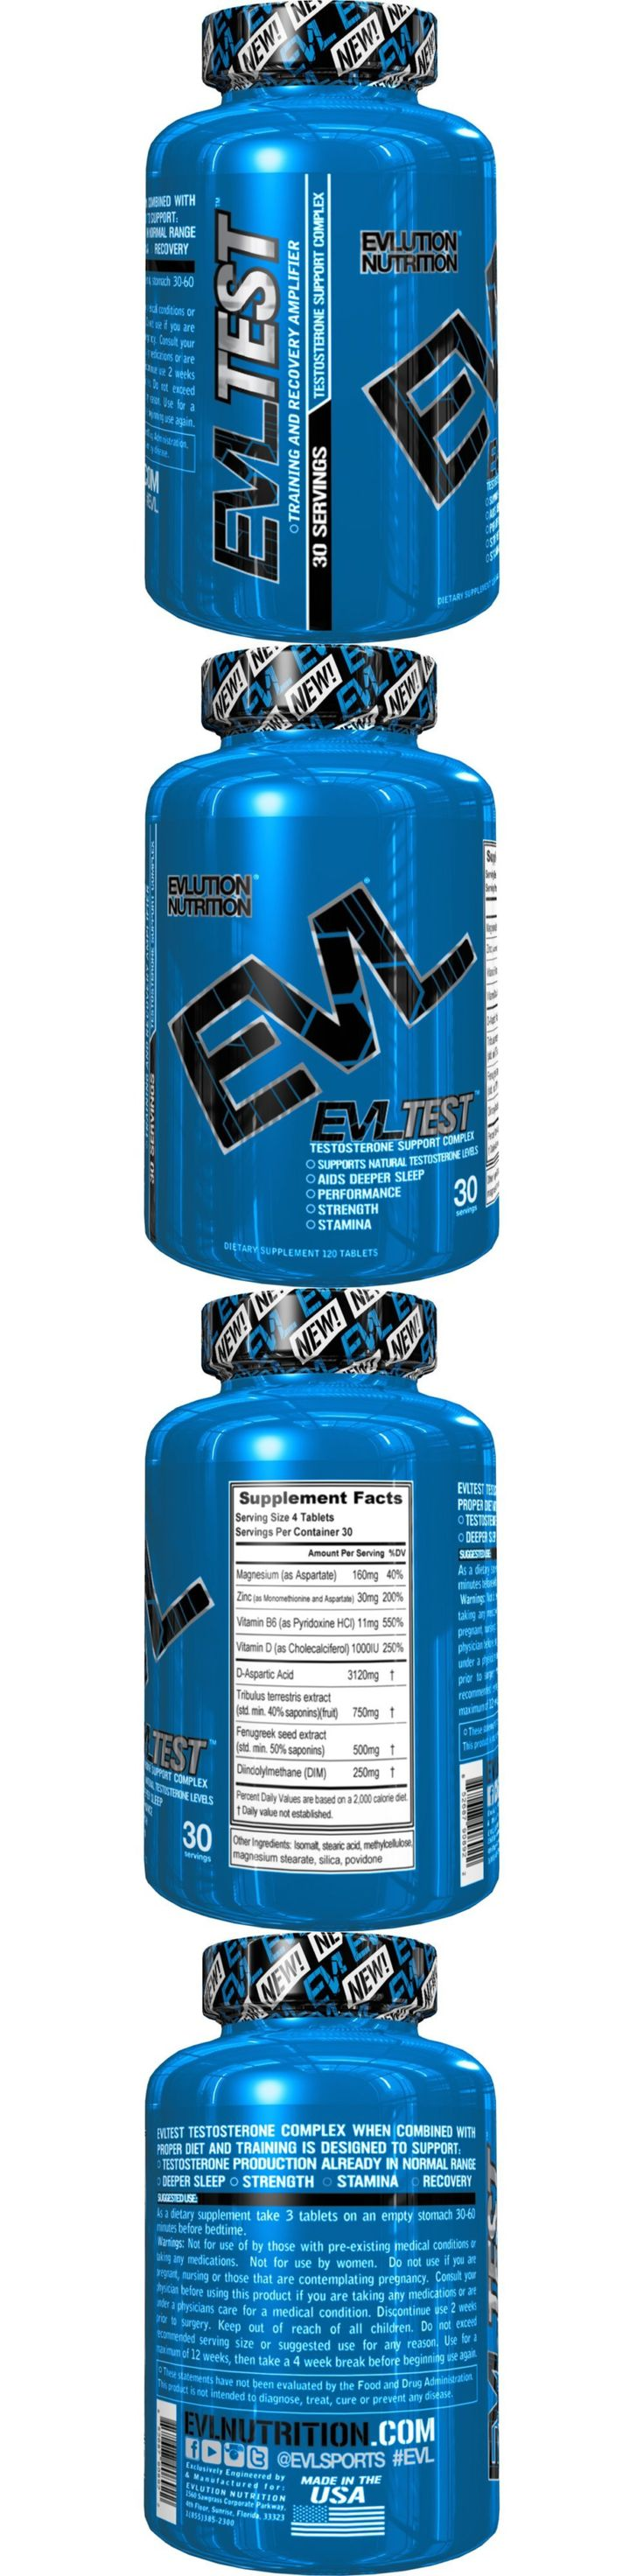 Other Sports Supplements: Evlution Nutrition Evl Test 120 Tablets (30 Servings) Testosterone Booster - New -> BUY IT NOW ONLY: $30.99 on eBay!